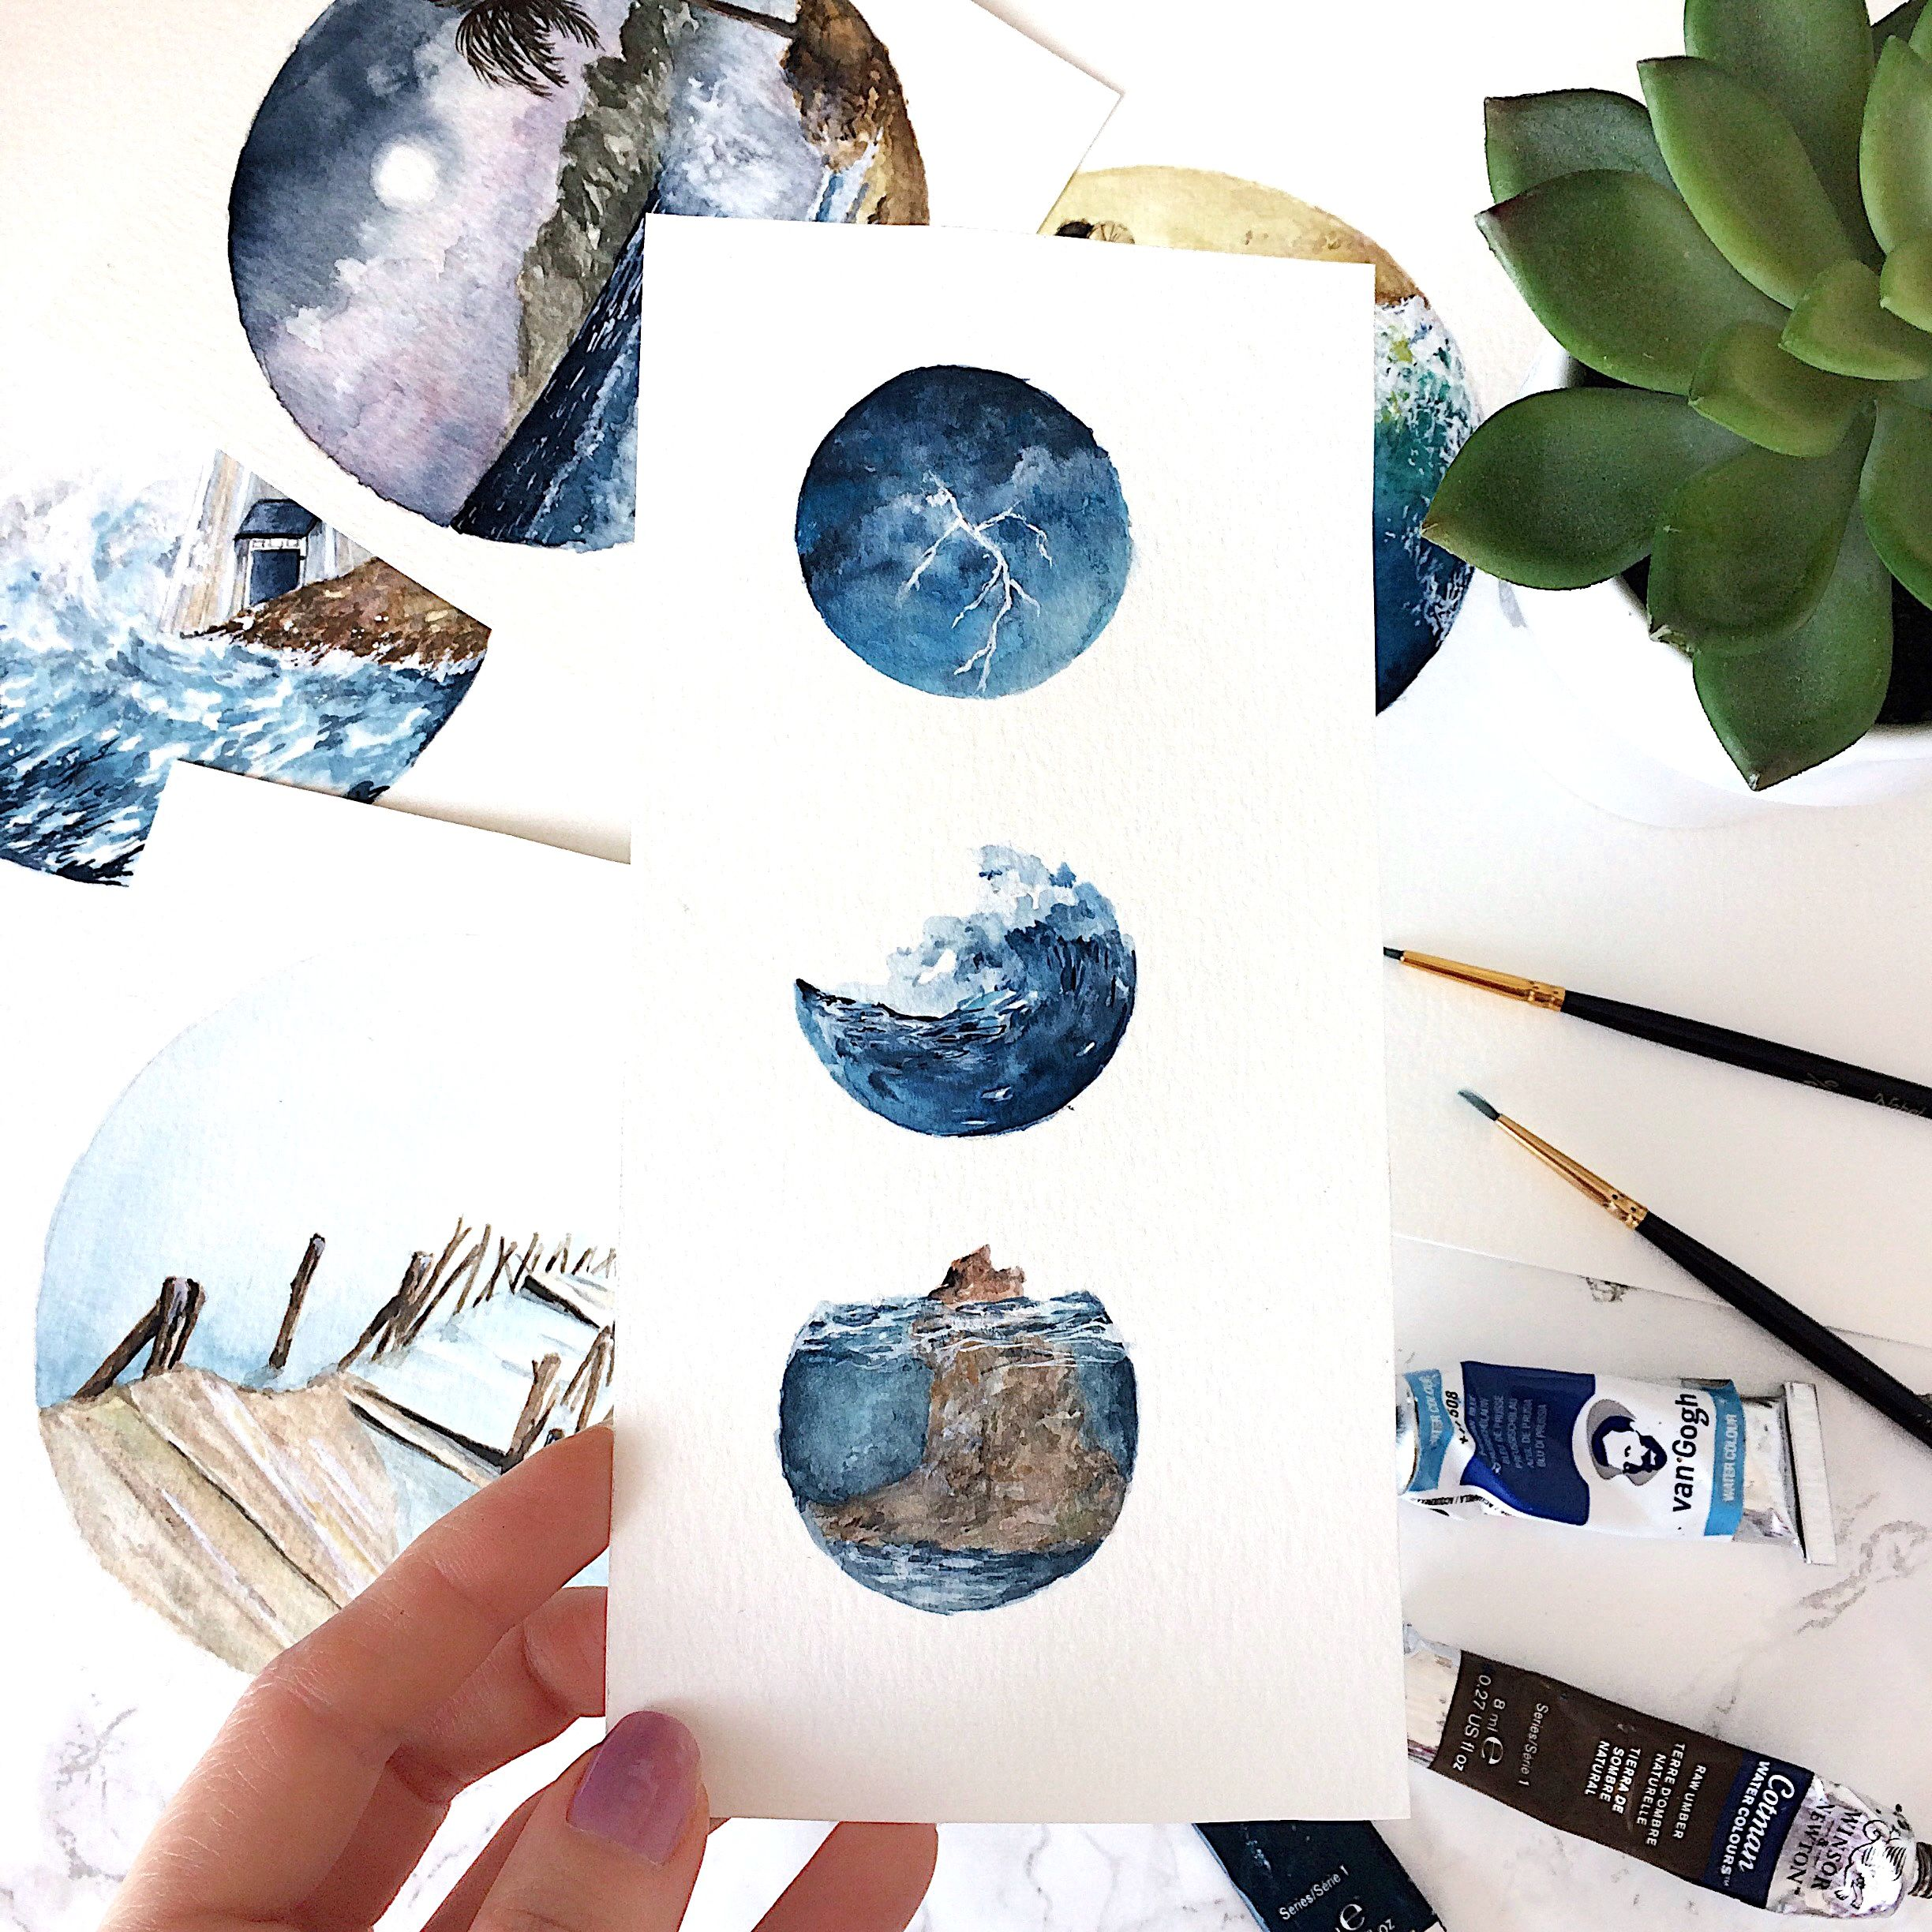 038971a079297 Mini water inspired doodles #watercolor #doodles #doodling #art ...